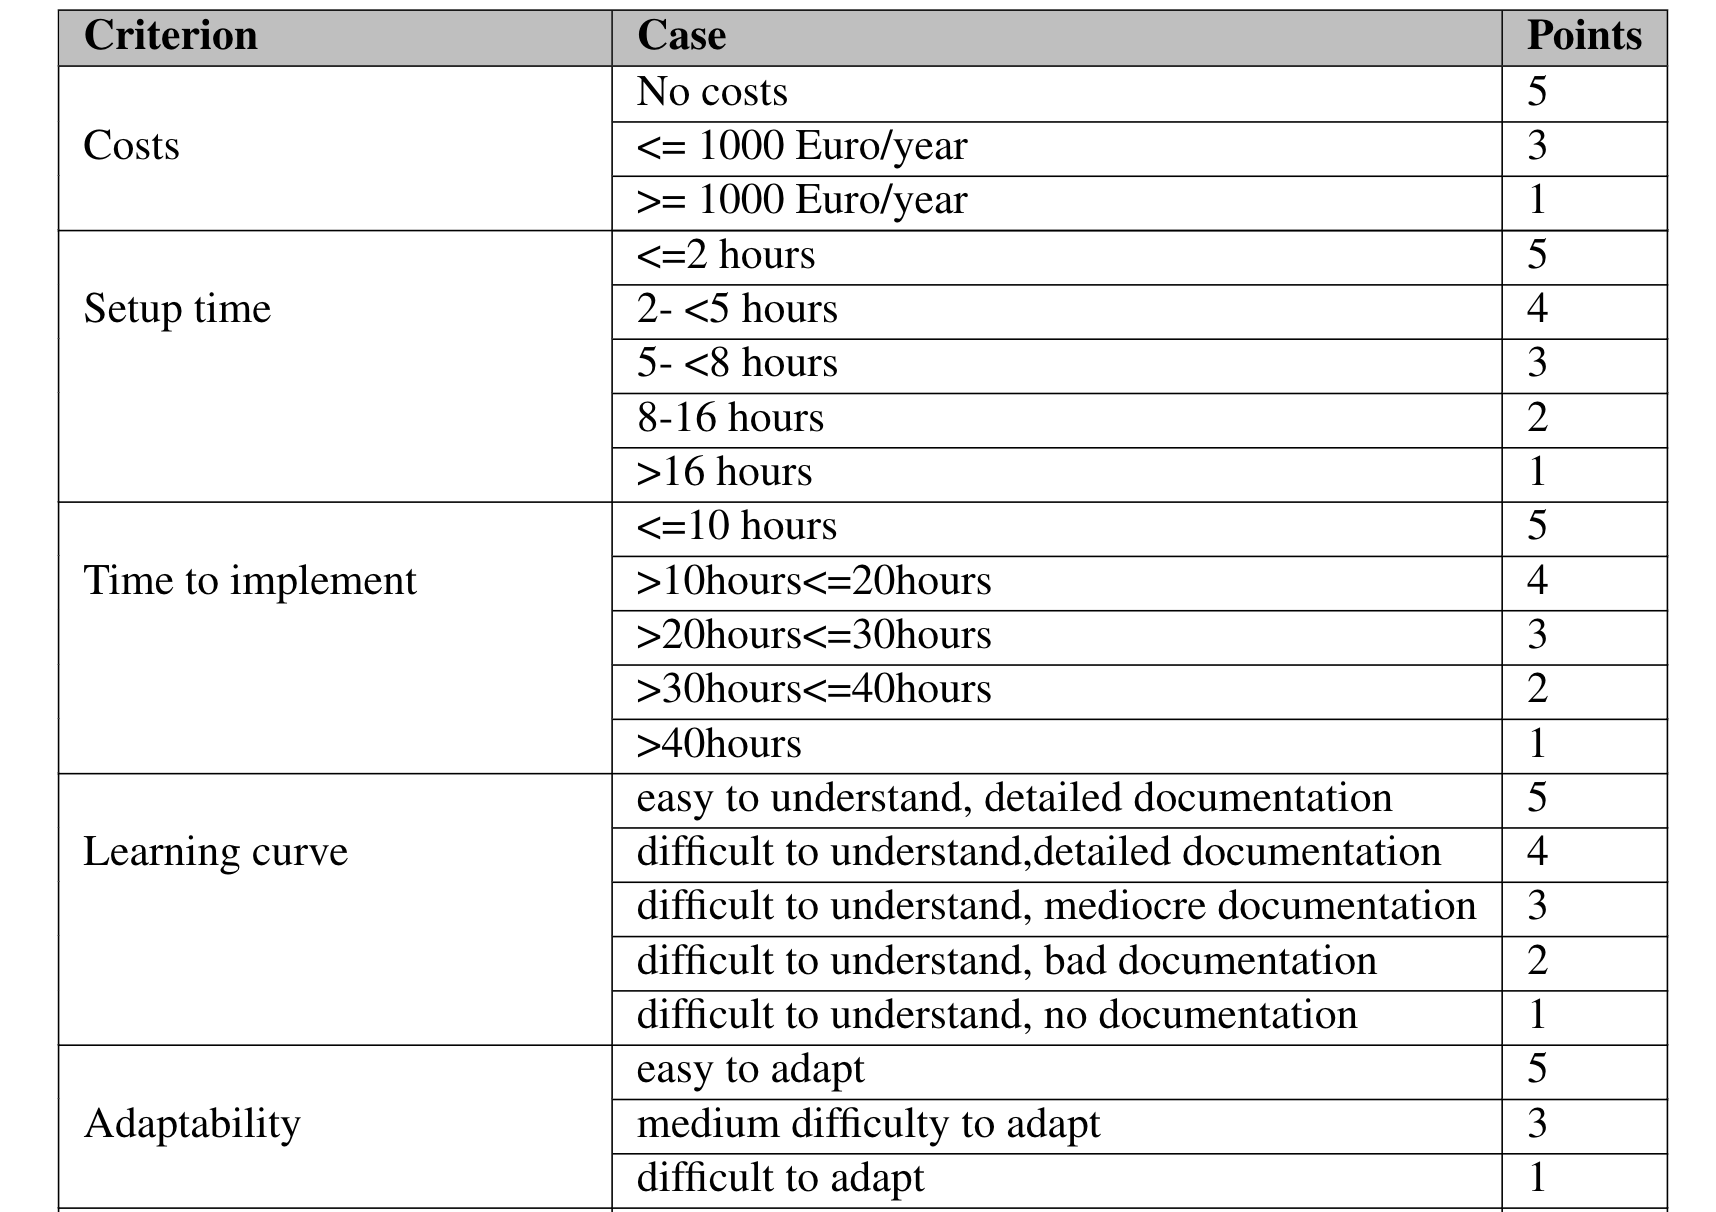 table listing the comparison criteria and in which specific case are given how many points